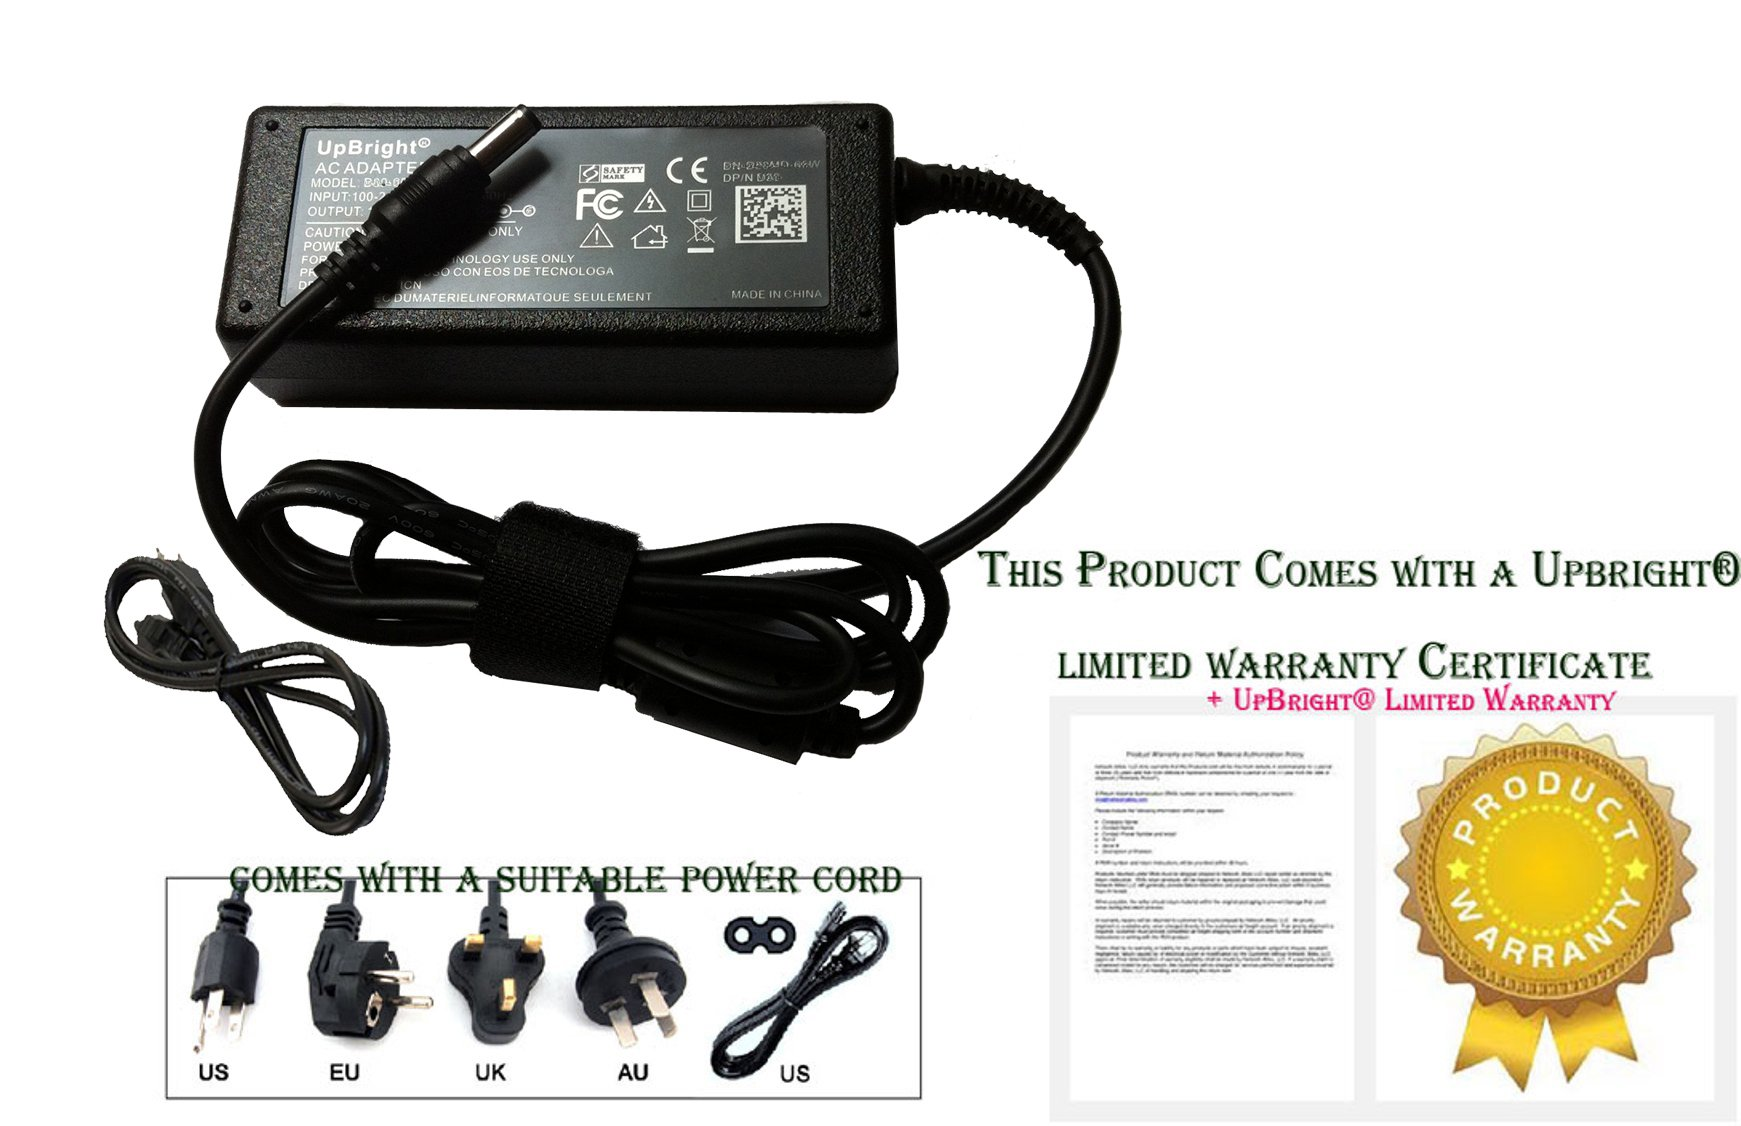 UpBright NEW 12V AC / DC Adapter For Jensen 2412 JE2412LED 24'' 2612 JE2612LED 26'' JE2612LEDRTL LED LCD TV HDTV HD DVD Combo RV Direct ACDC1911 FPE1909DVDC 12VDC Switching Power Supply Battery Charger by UPBRIGHT